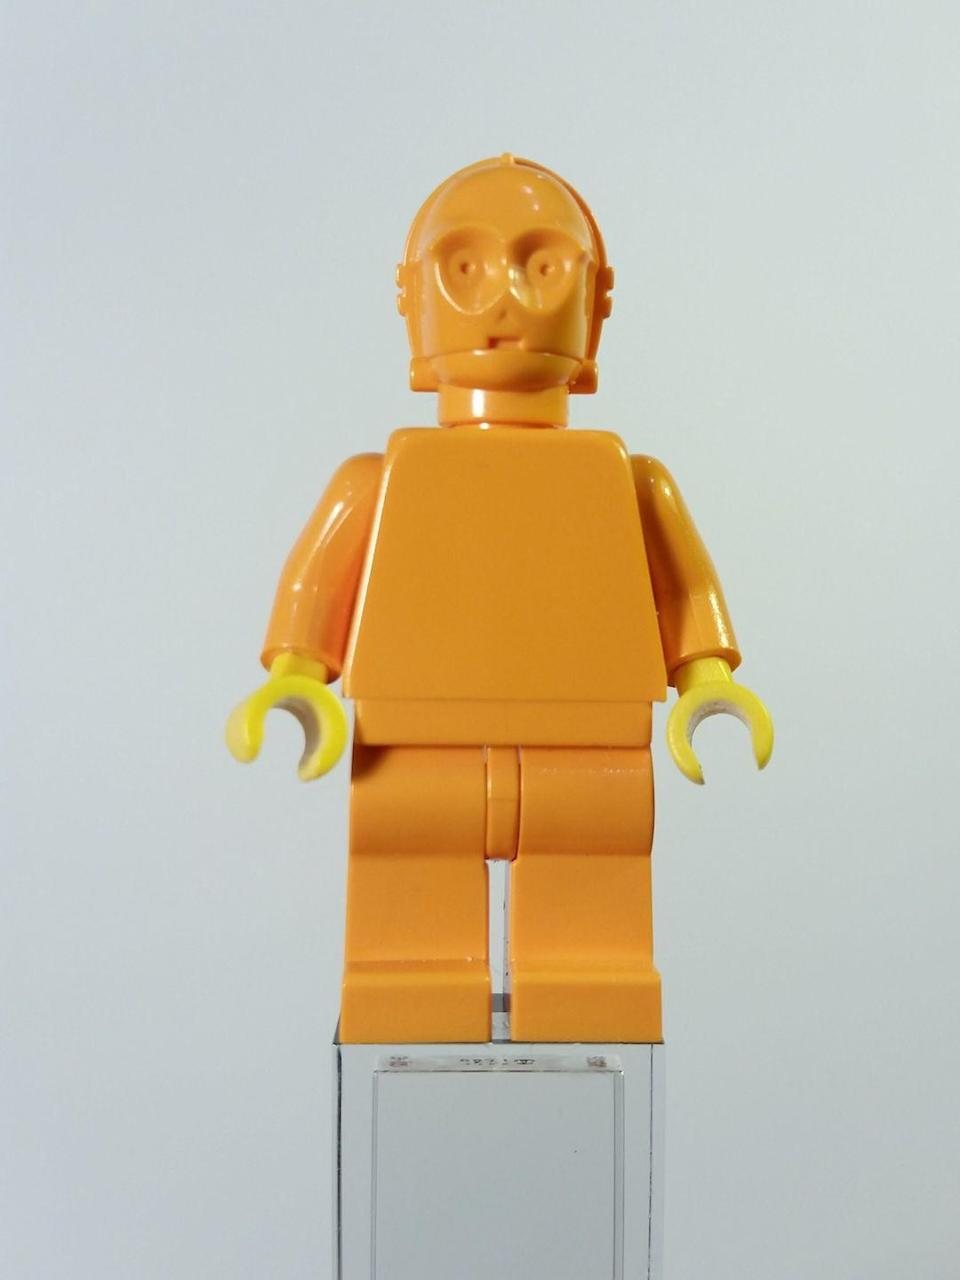 """<p>This cute little LEGO C3PO is the most expensive piece of plastic you (hopefully) own. He's suuuuuper rare due to the limited amount made and <a href=""""https://gunaxin.com/valuable-star-wars-toy-collectibles"""" rel=""""nofollow noopener"""" target=""""_blank"""" data-ylk=""""slk:reportedly"""" class=""""link rapid-noclick-resp"""">reportedly</a> worth $3,200.</p>"""